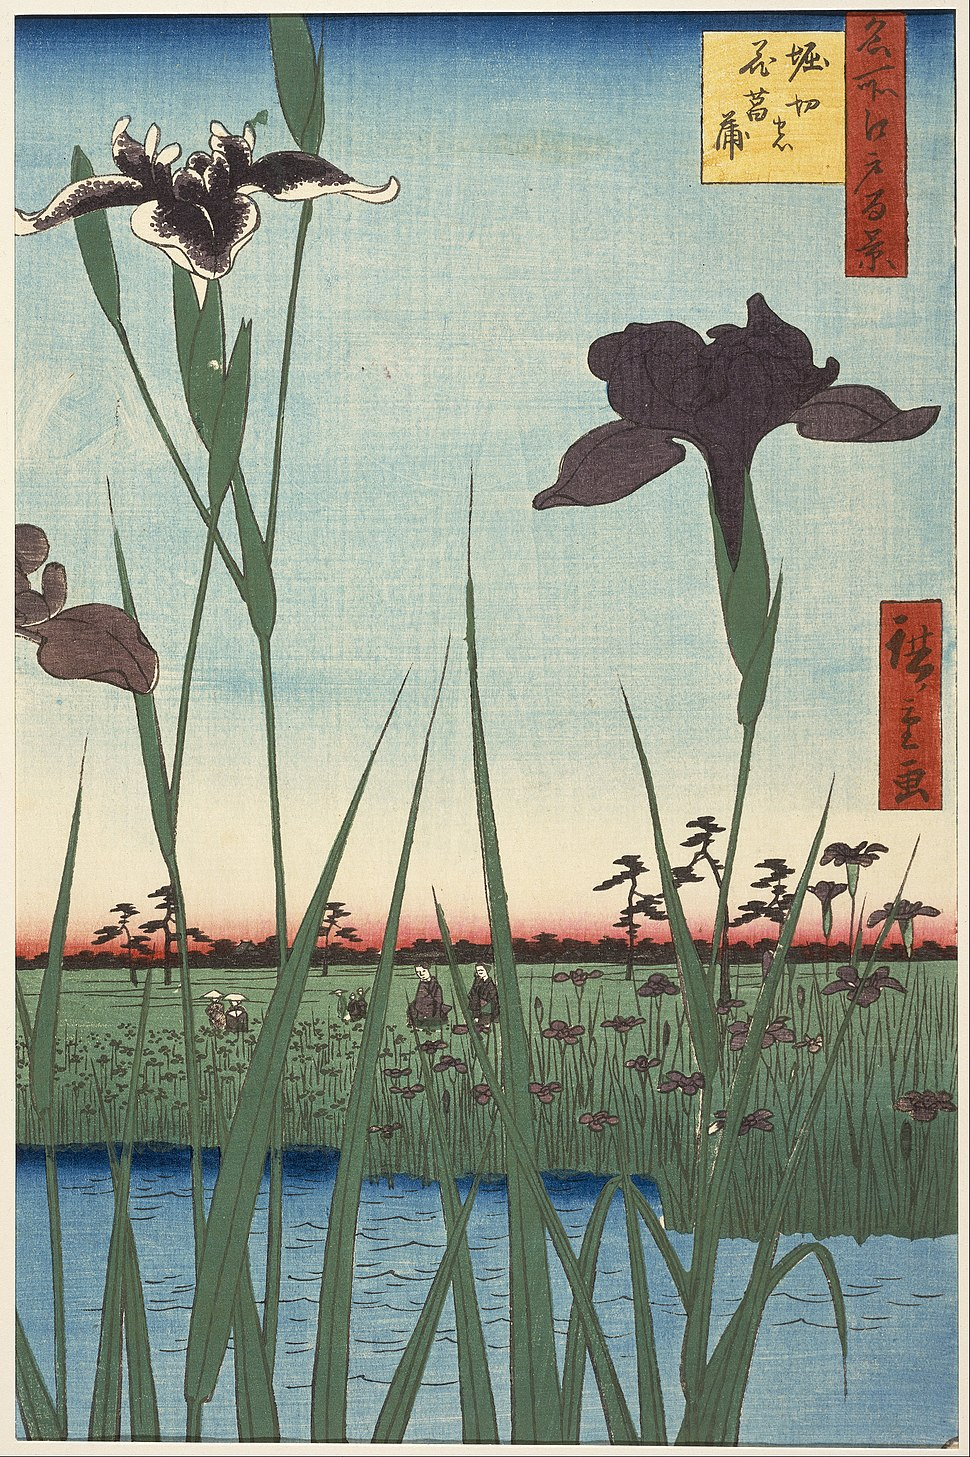 Utagawa Hiroshige I, published by Uoya Eikichi - Horikiri Iris Garden (Horikiri no hanashōbu), from the series One Hundred Famous Views of Edo (Meish... - Google Art Project